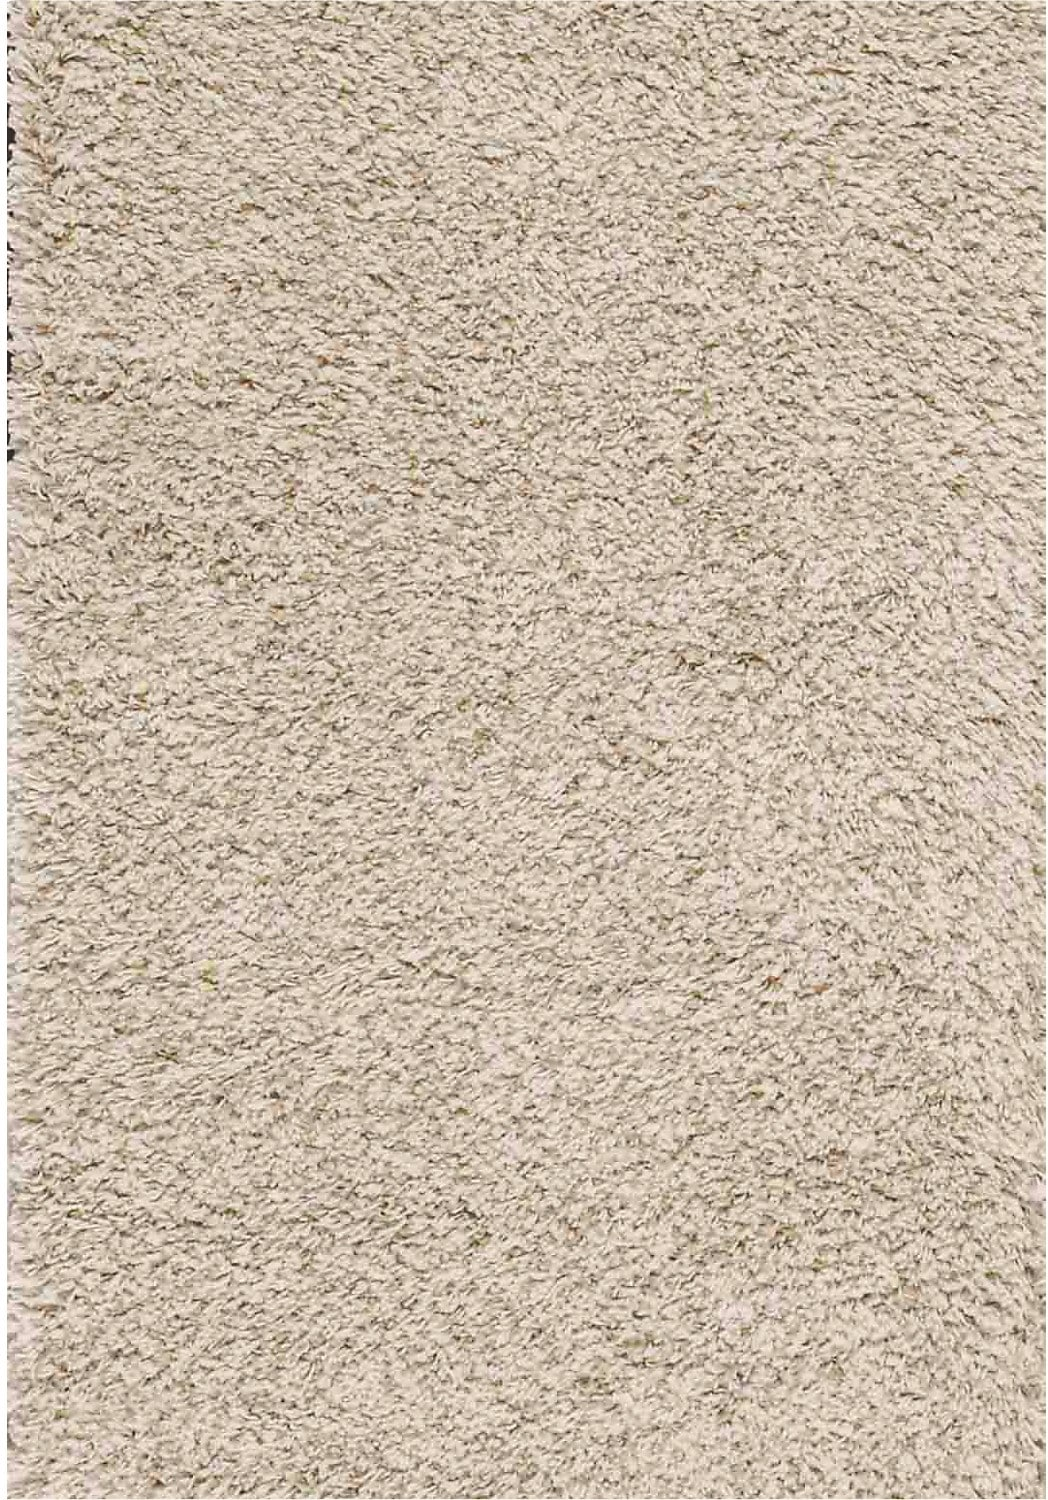 Rugs - 5' x 8' Contemporary Shag Area Rug - Beige